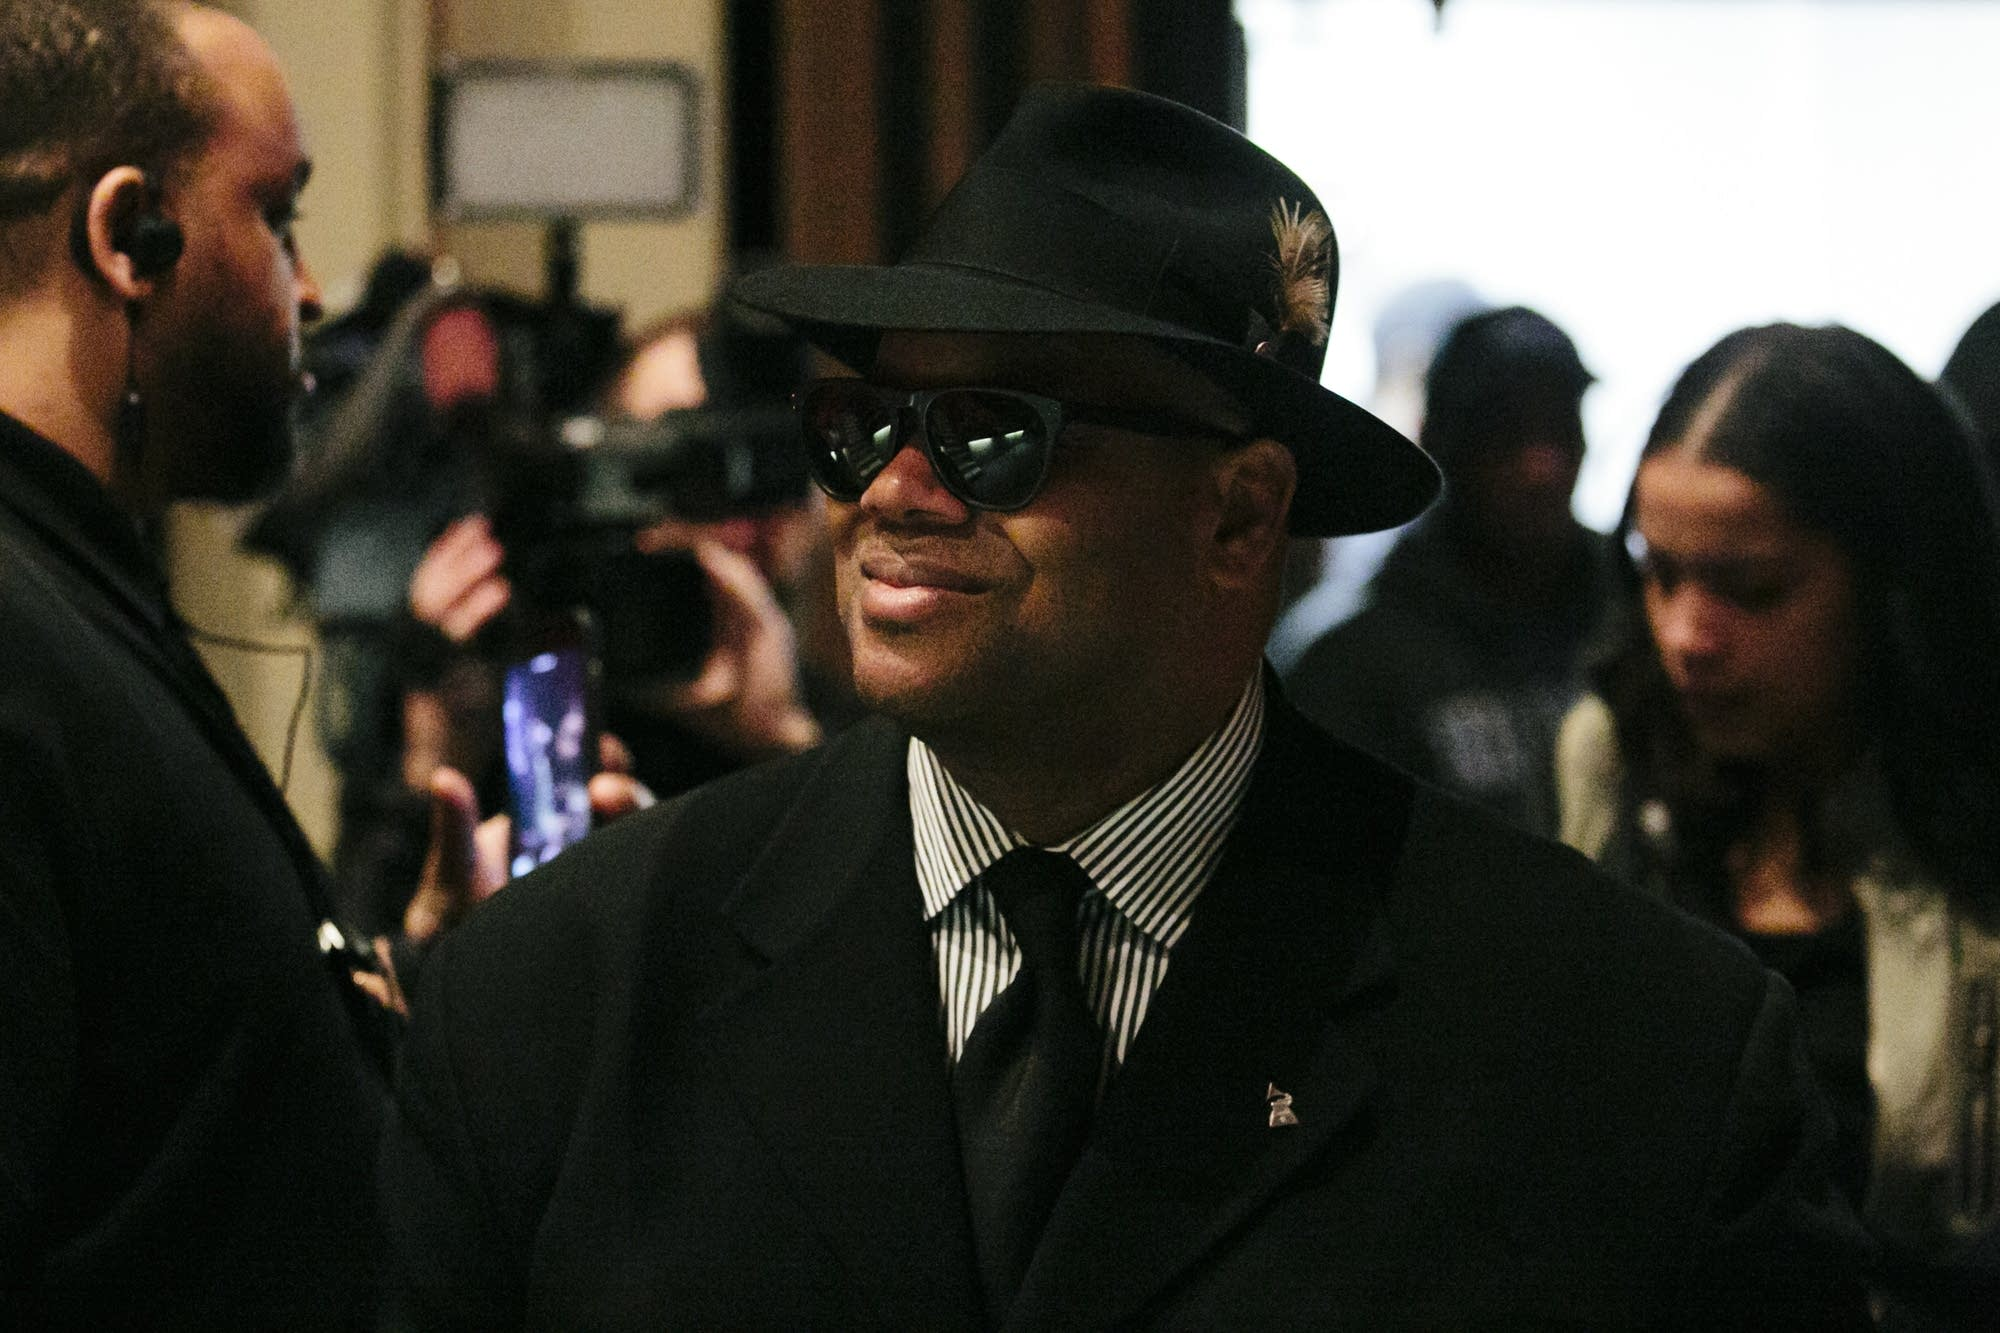 Jimmy Jam enters the North High School auditorium